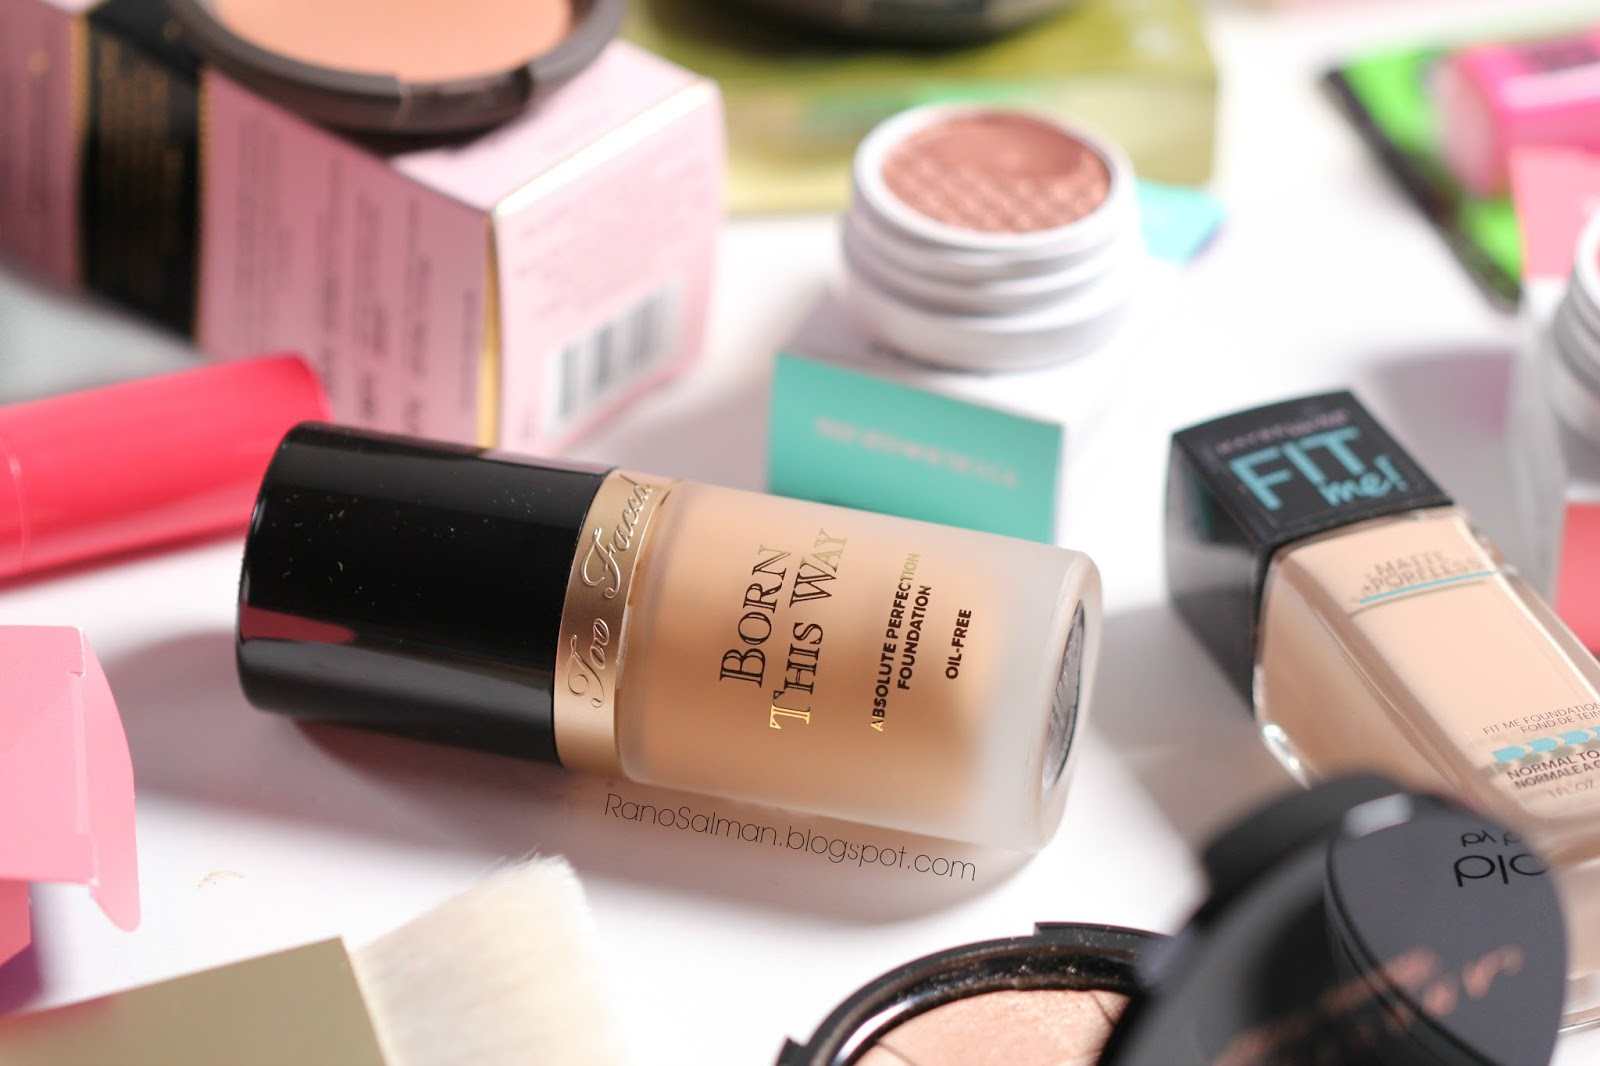 cc0c8db3d Too Faced Born This Way Foundation and Concealer فاونديشن وكونسيلر توفيسد  بورن ذيس واي